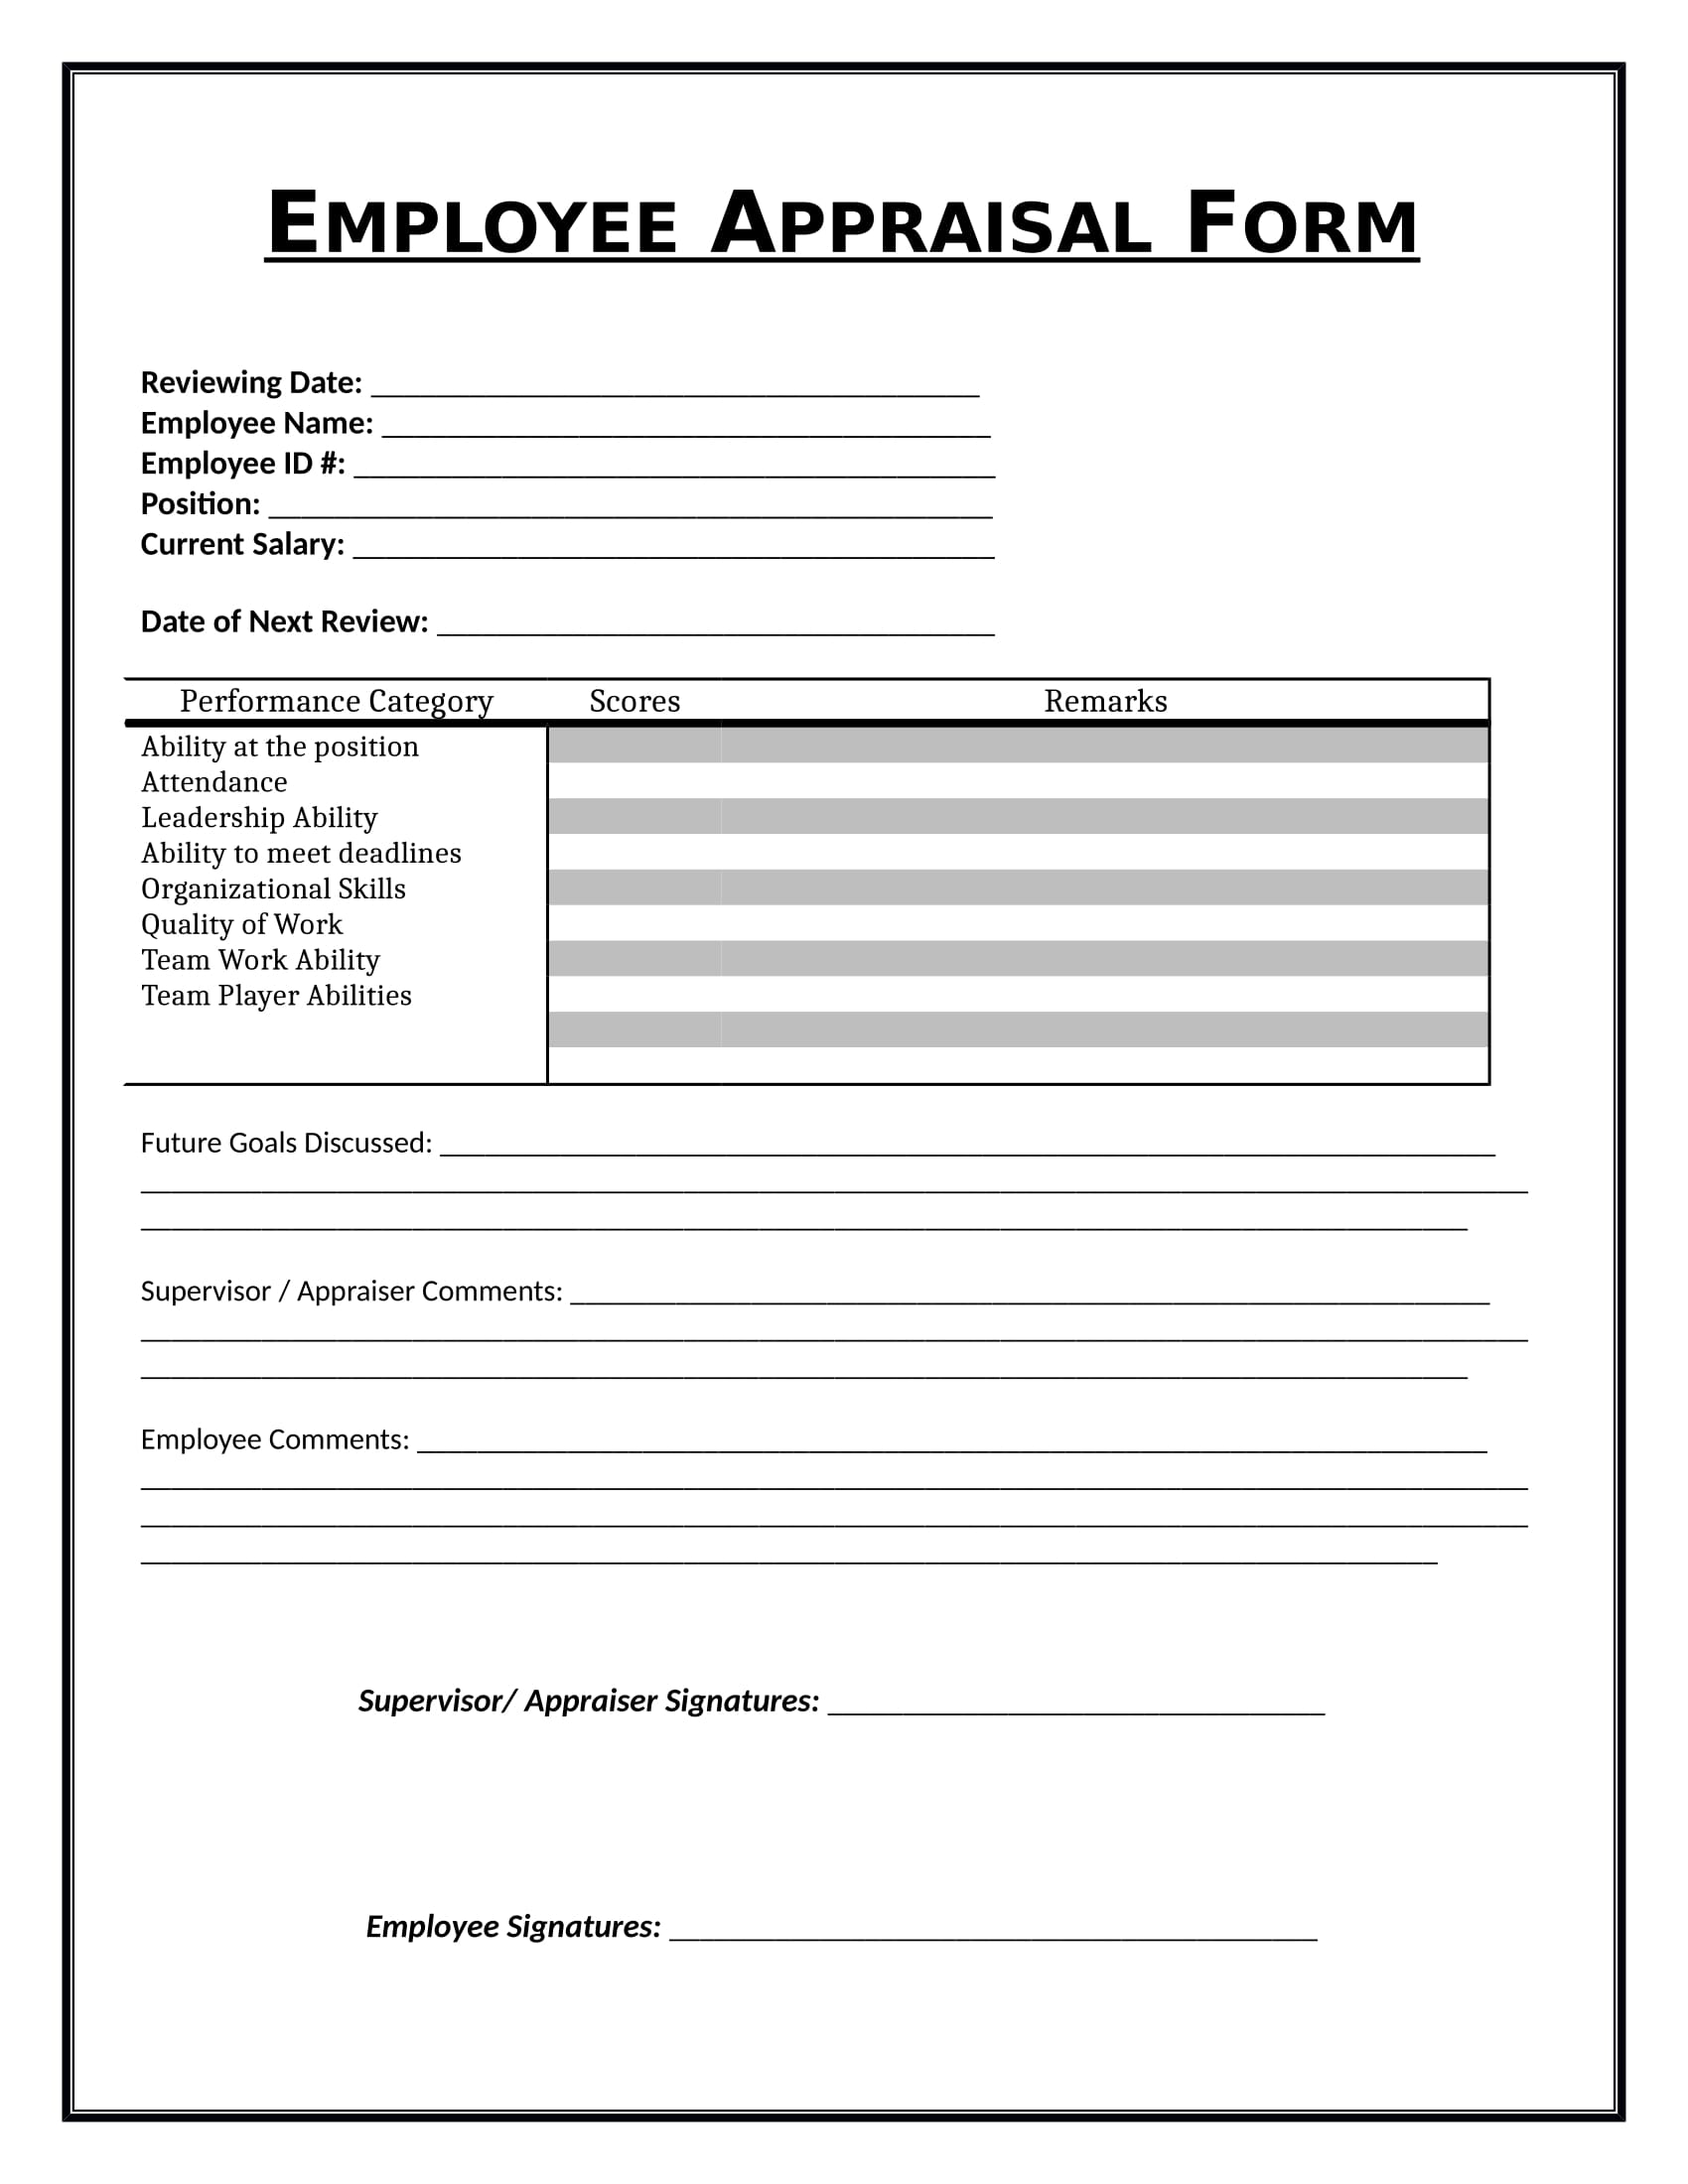 employee appraisal review form 1